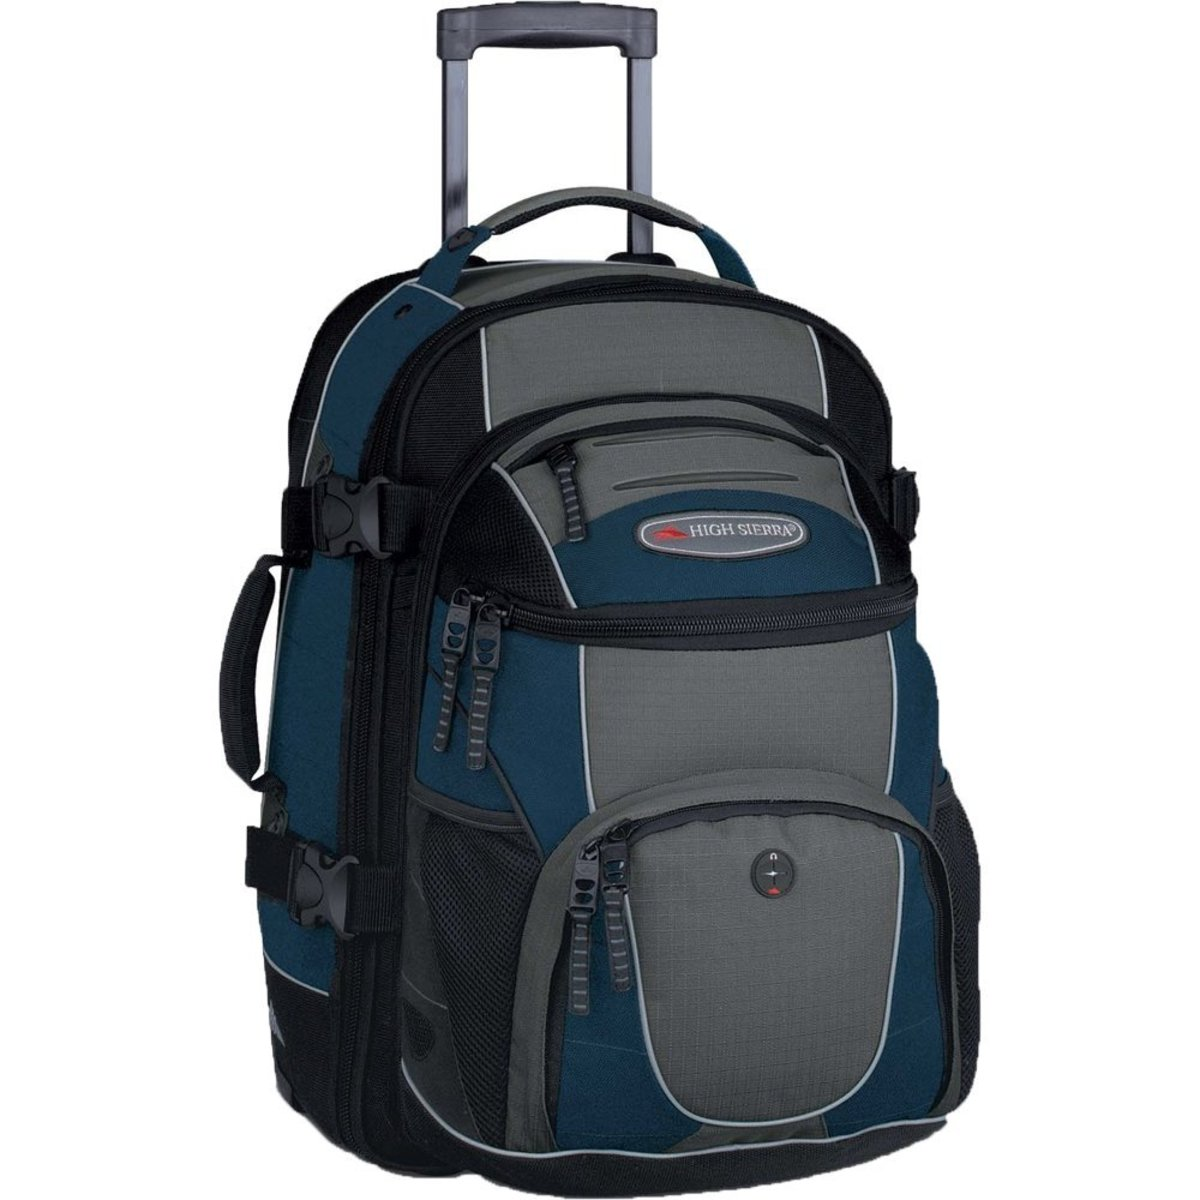 Buy A Travel Backpack With Wheels